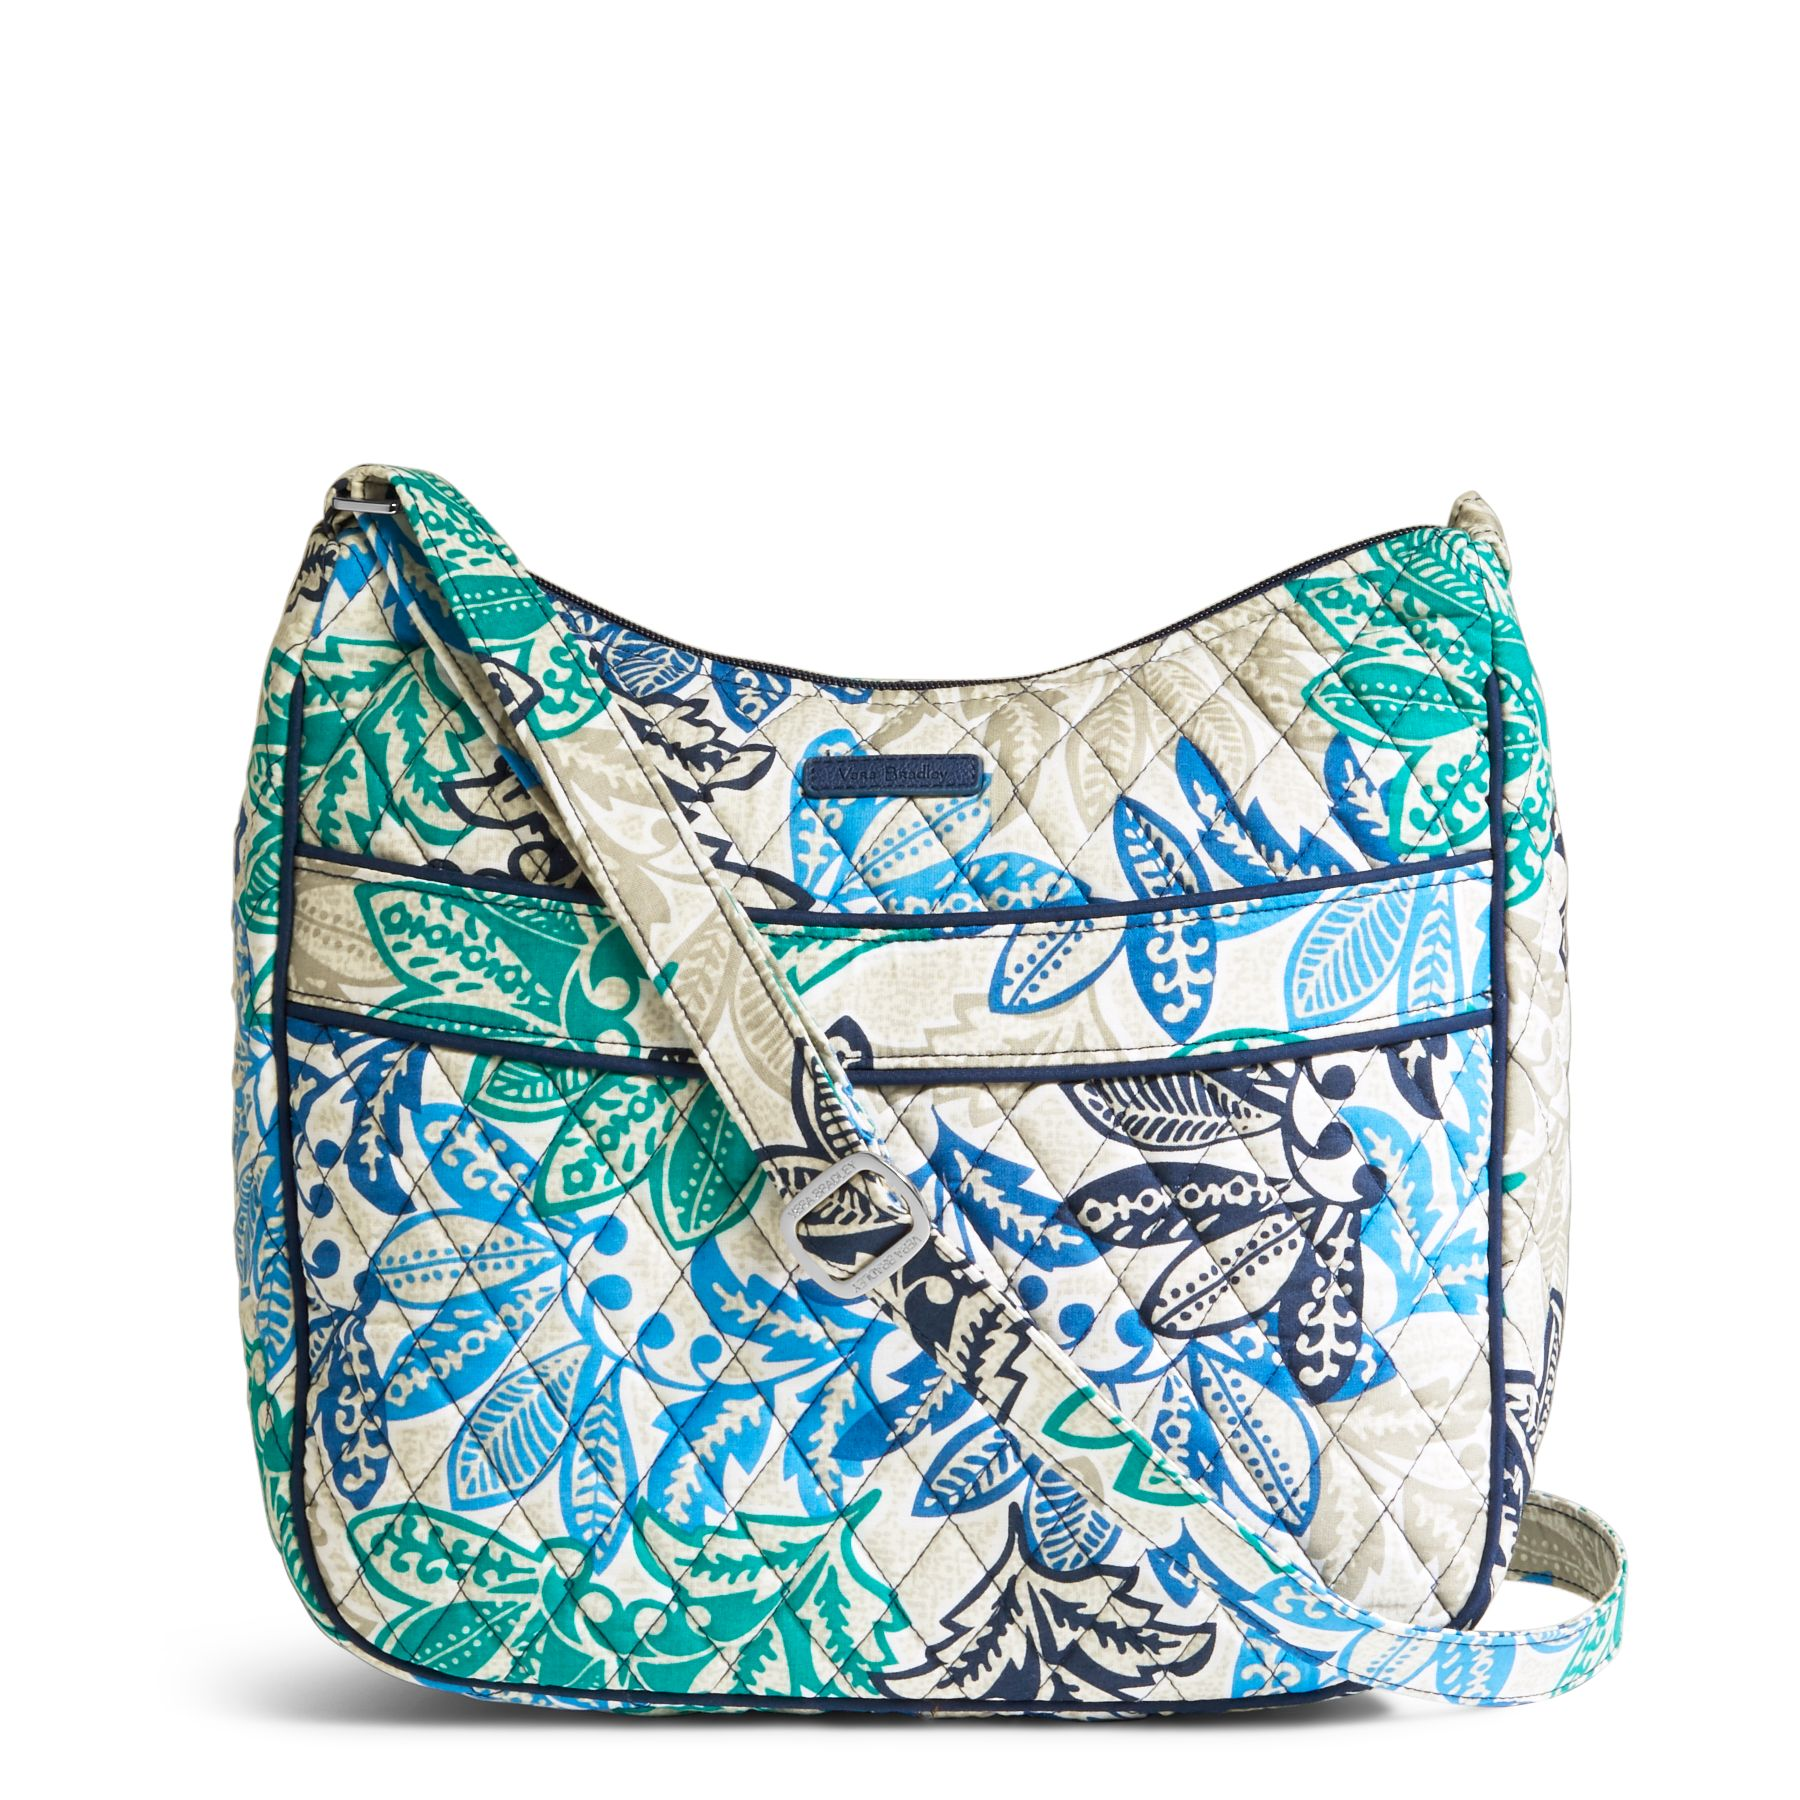 66dc0586c778 I typically purchase a new purse at the sale. For several years it was the  Glenna